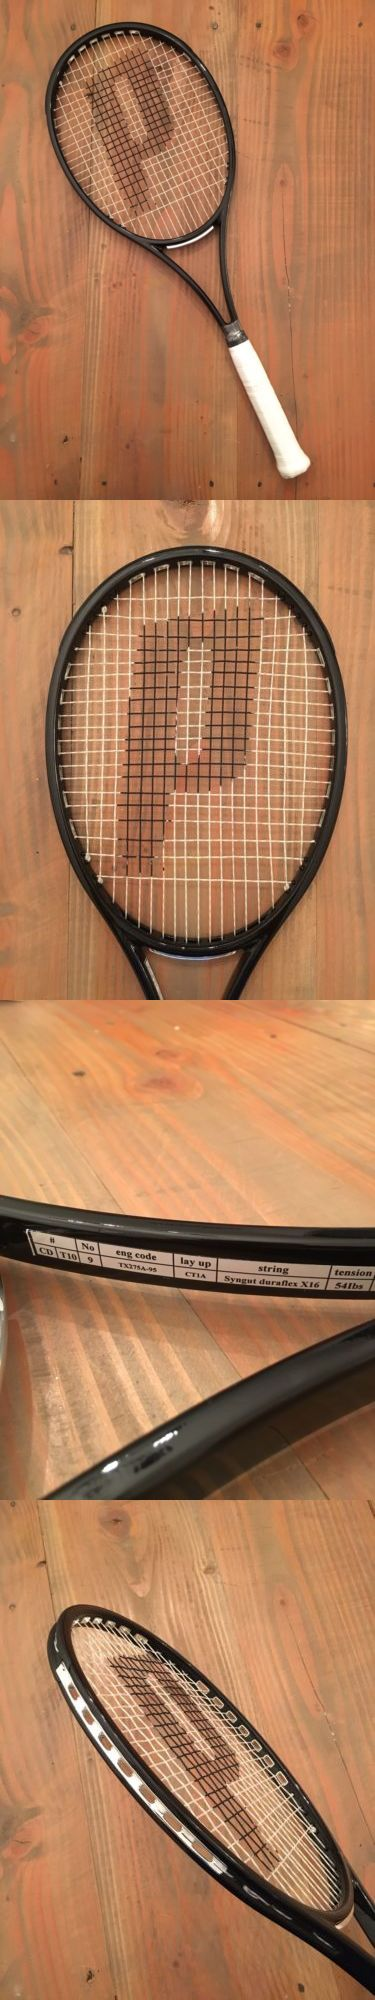 Racquets 20871: Prince Experimental Tour 95 - 4 3/8 - Rebel Pro Stock BUY IT NOW ONLY: $120.0